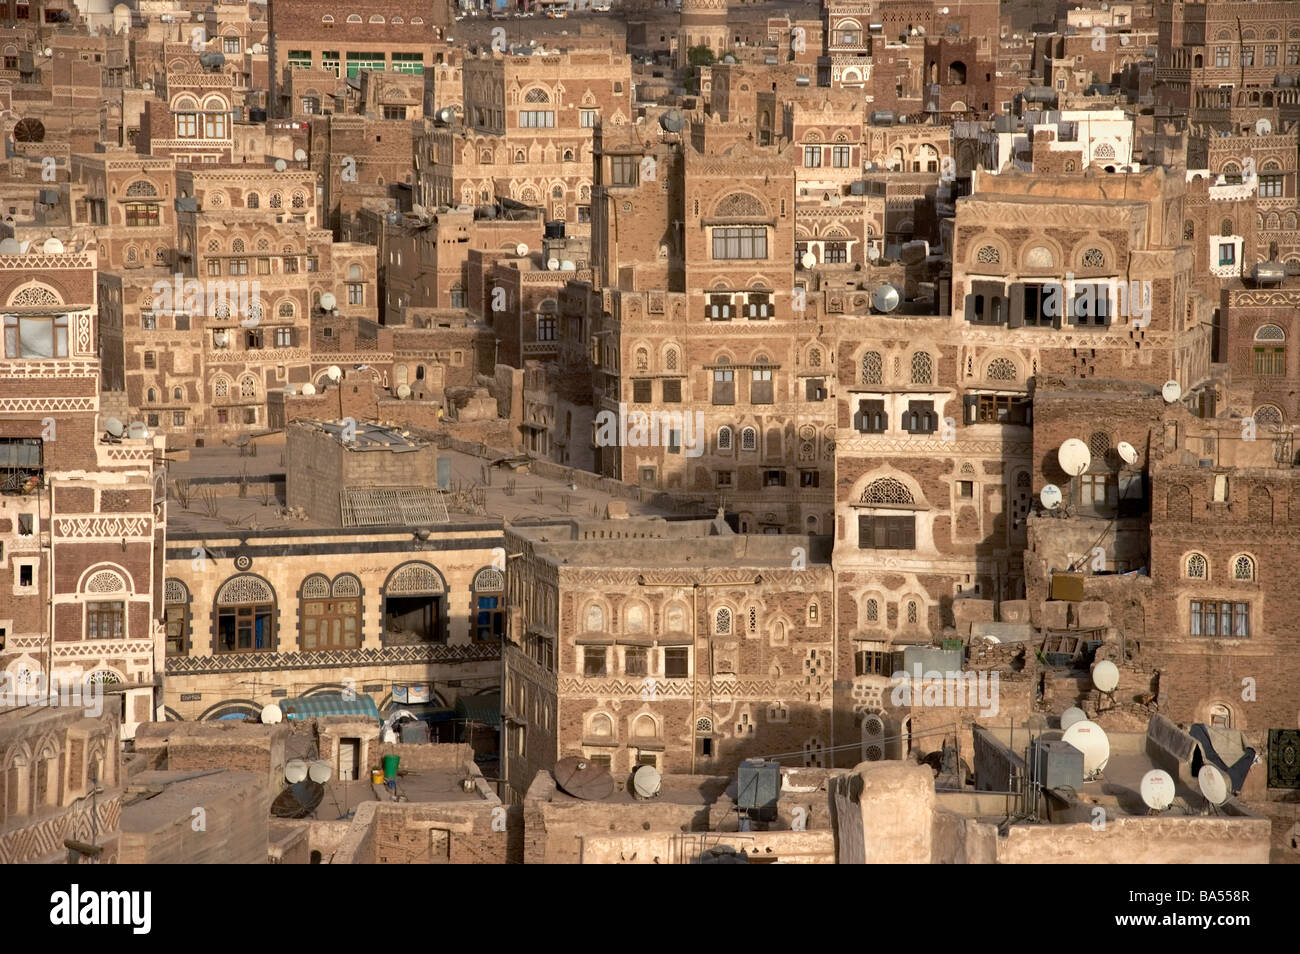 A cluster of tower houses in the old city of Sana'a, Yemen. - Stock Image